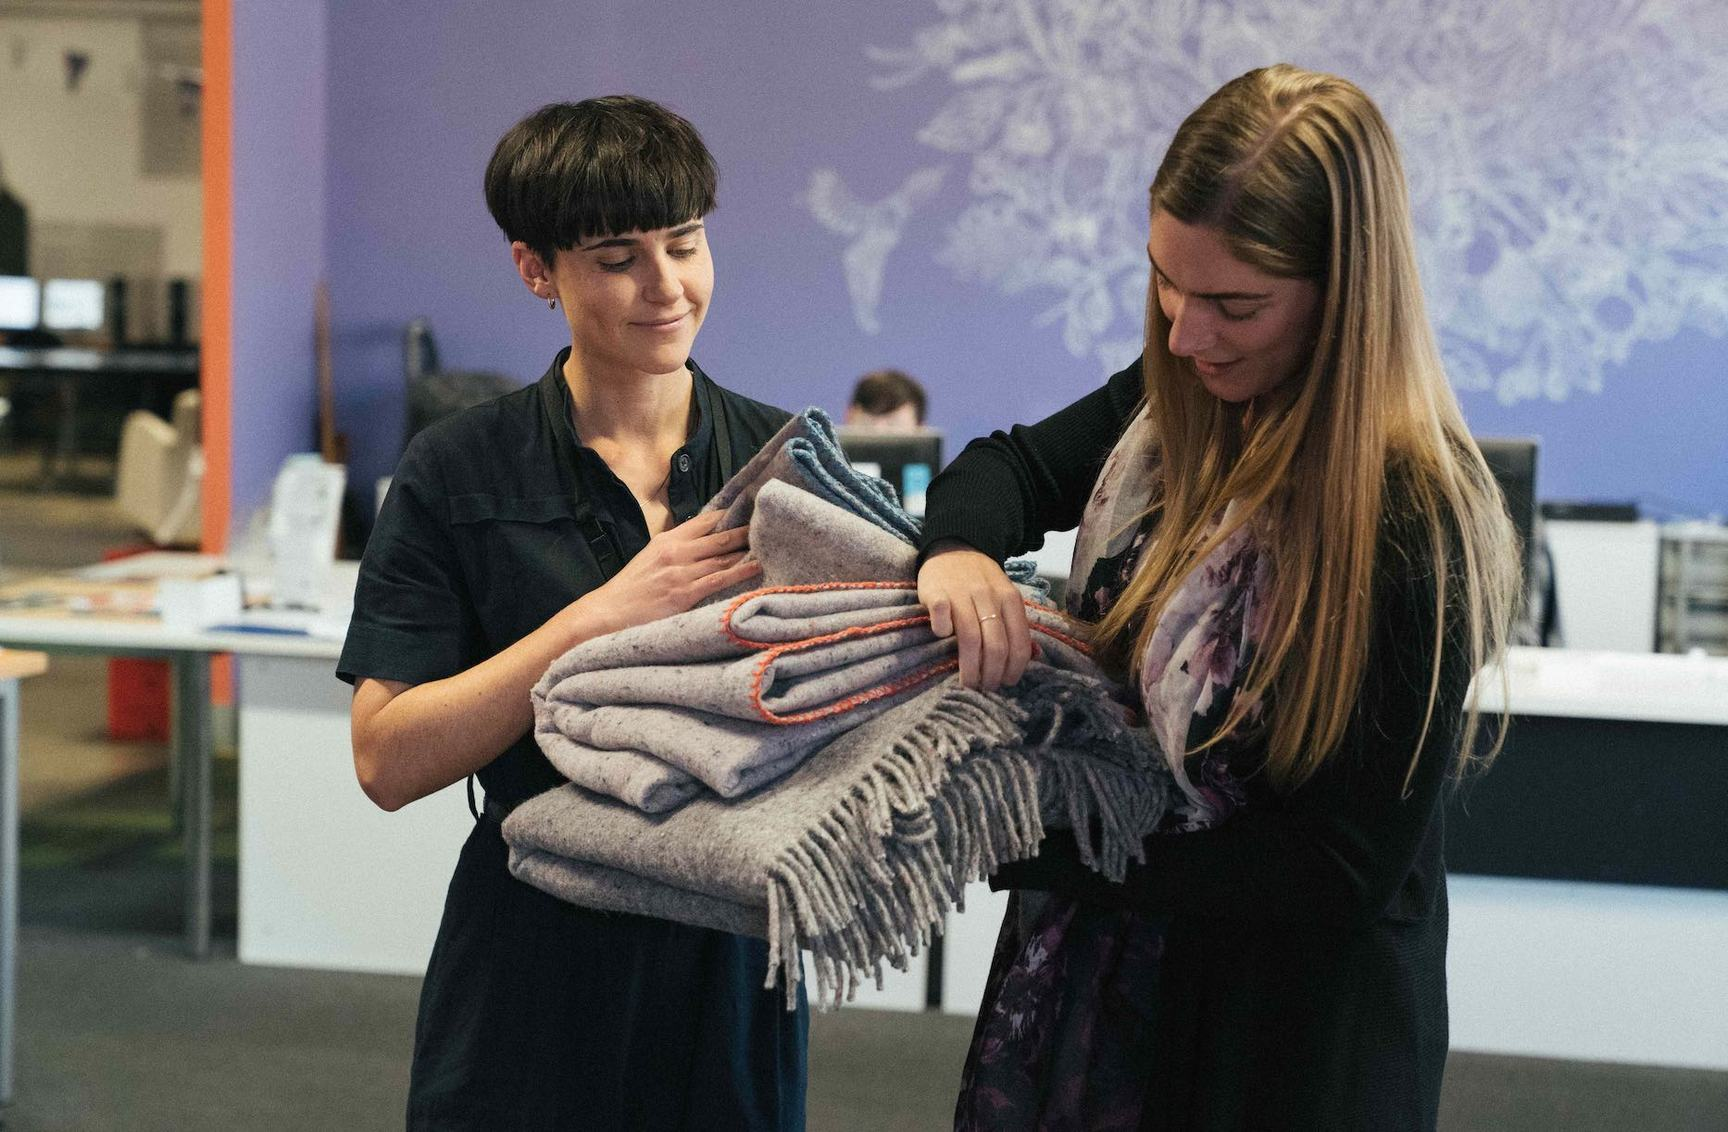 Seljak brand donating recycled wool blankets to the Asylum Seekers Refuge centre in Melbourne . Makers' Mrkt meet the maker